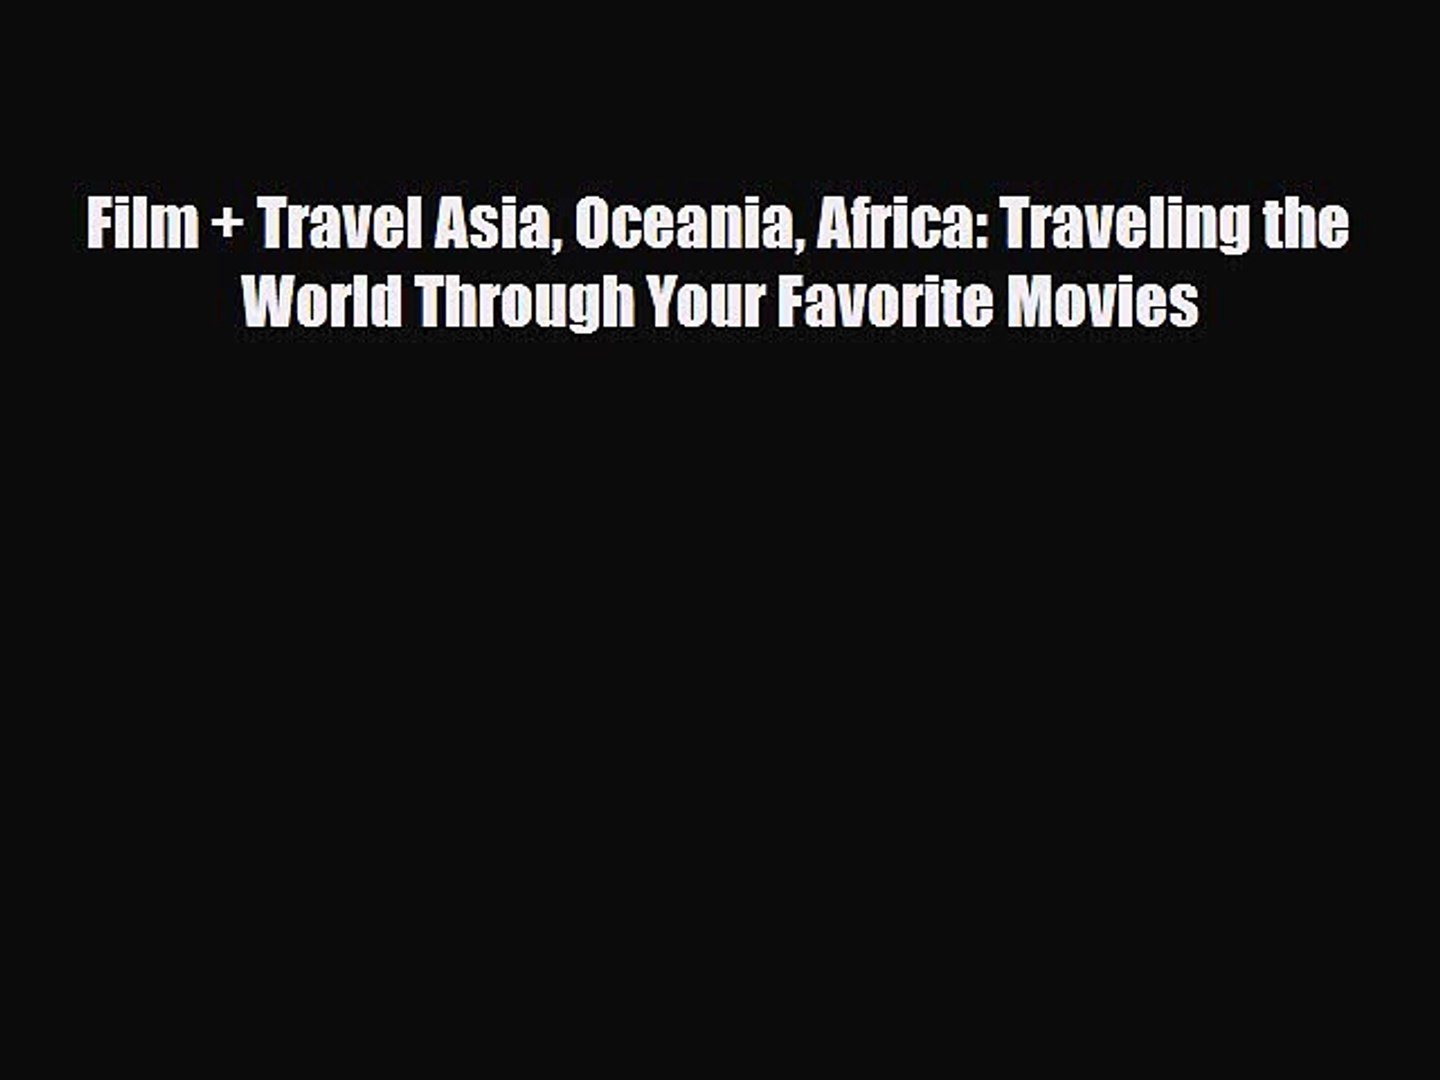 [PDF] Film + Travel Asia Oceania Africa: Traveling the World Through Your Favorite Movies [Download]